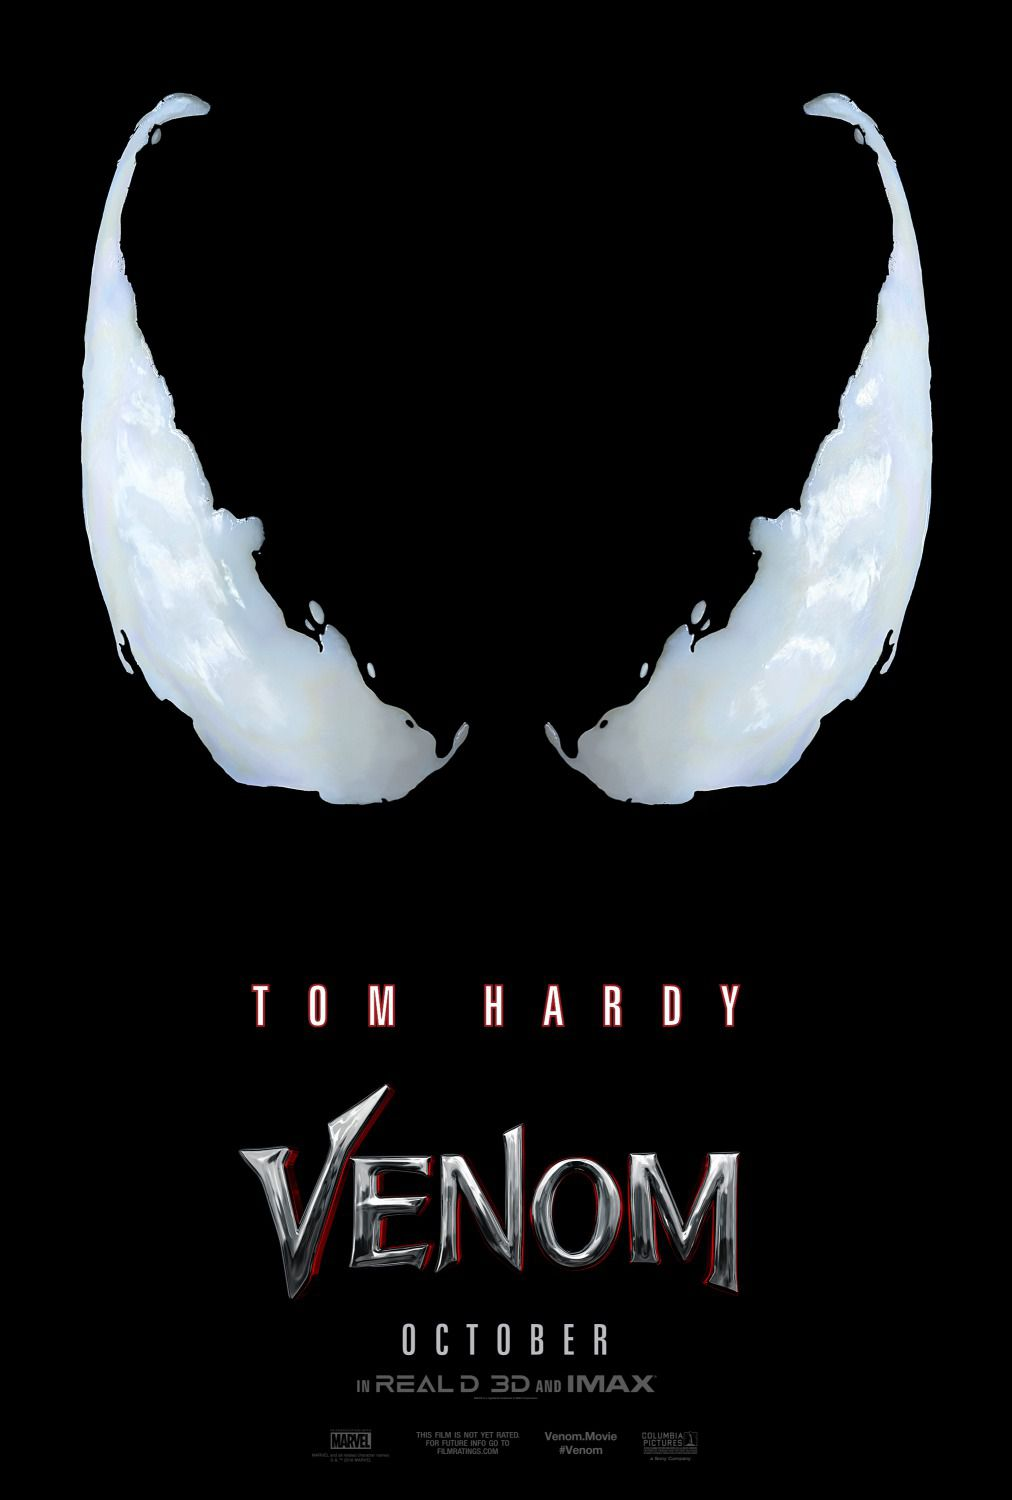 Venom (2018) - black live action super evil film